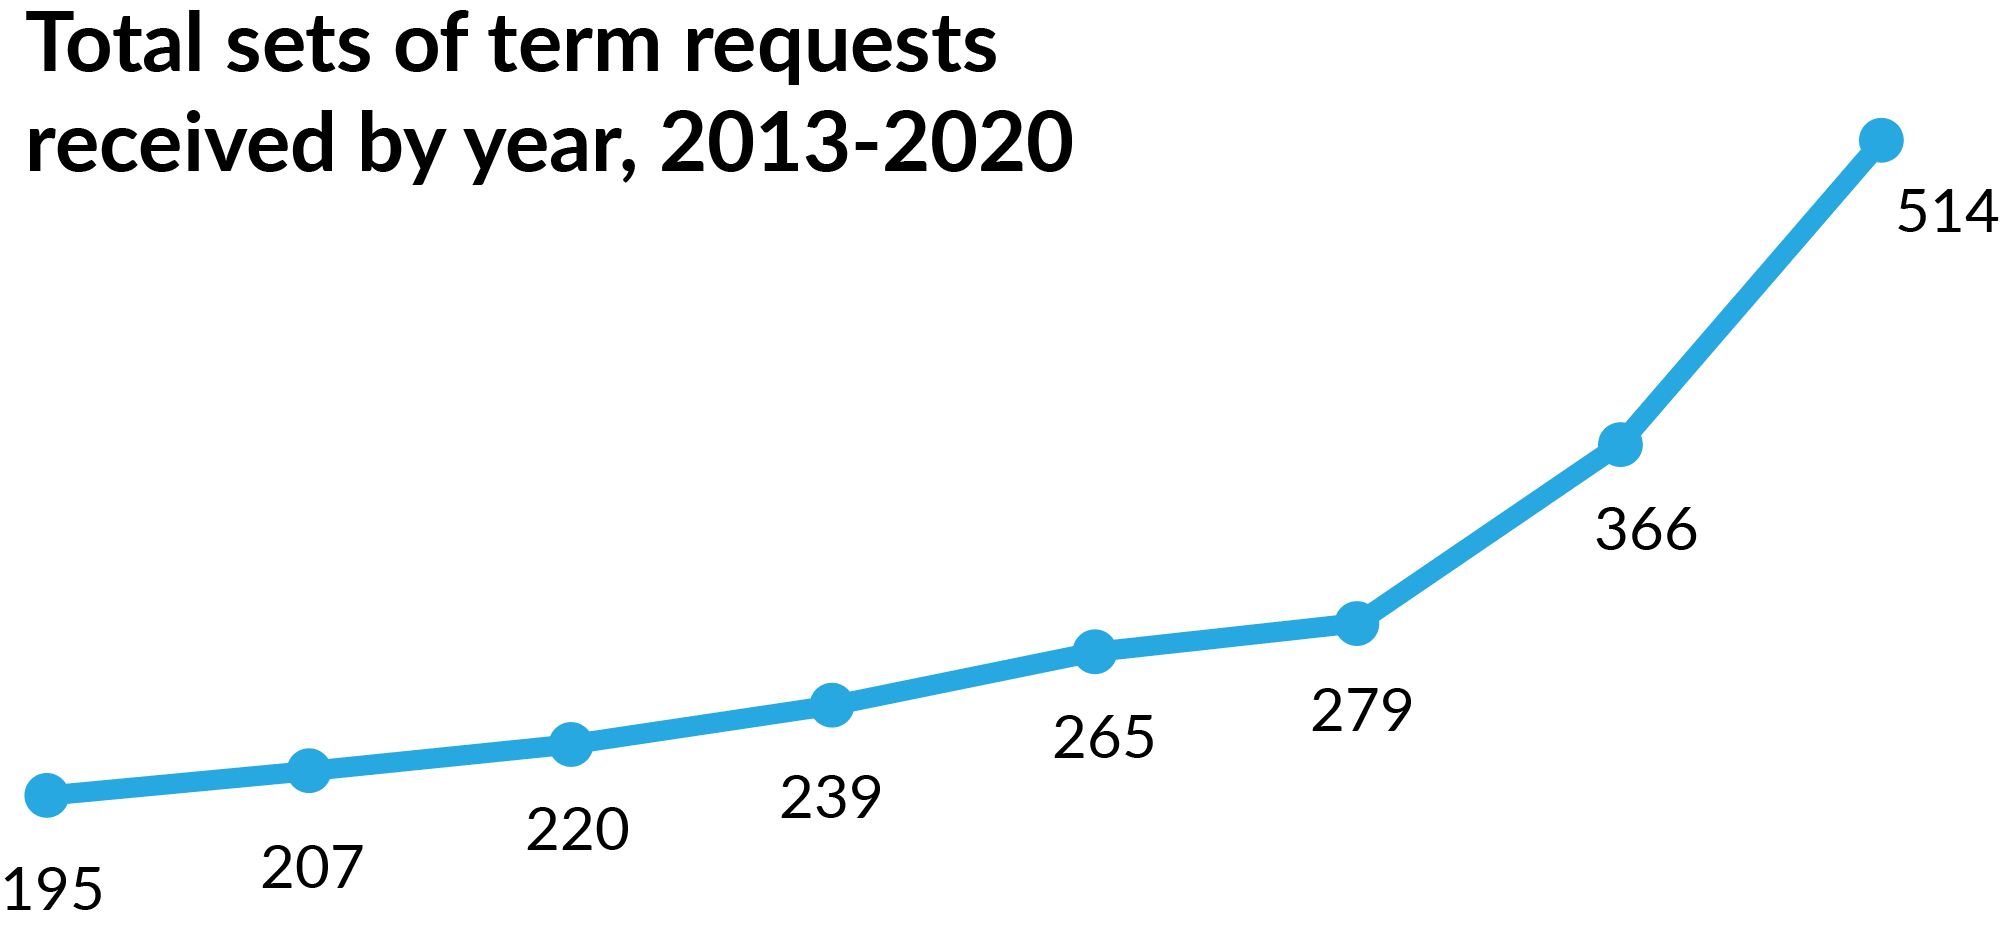 Total term requests received by year, 2013-2020